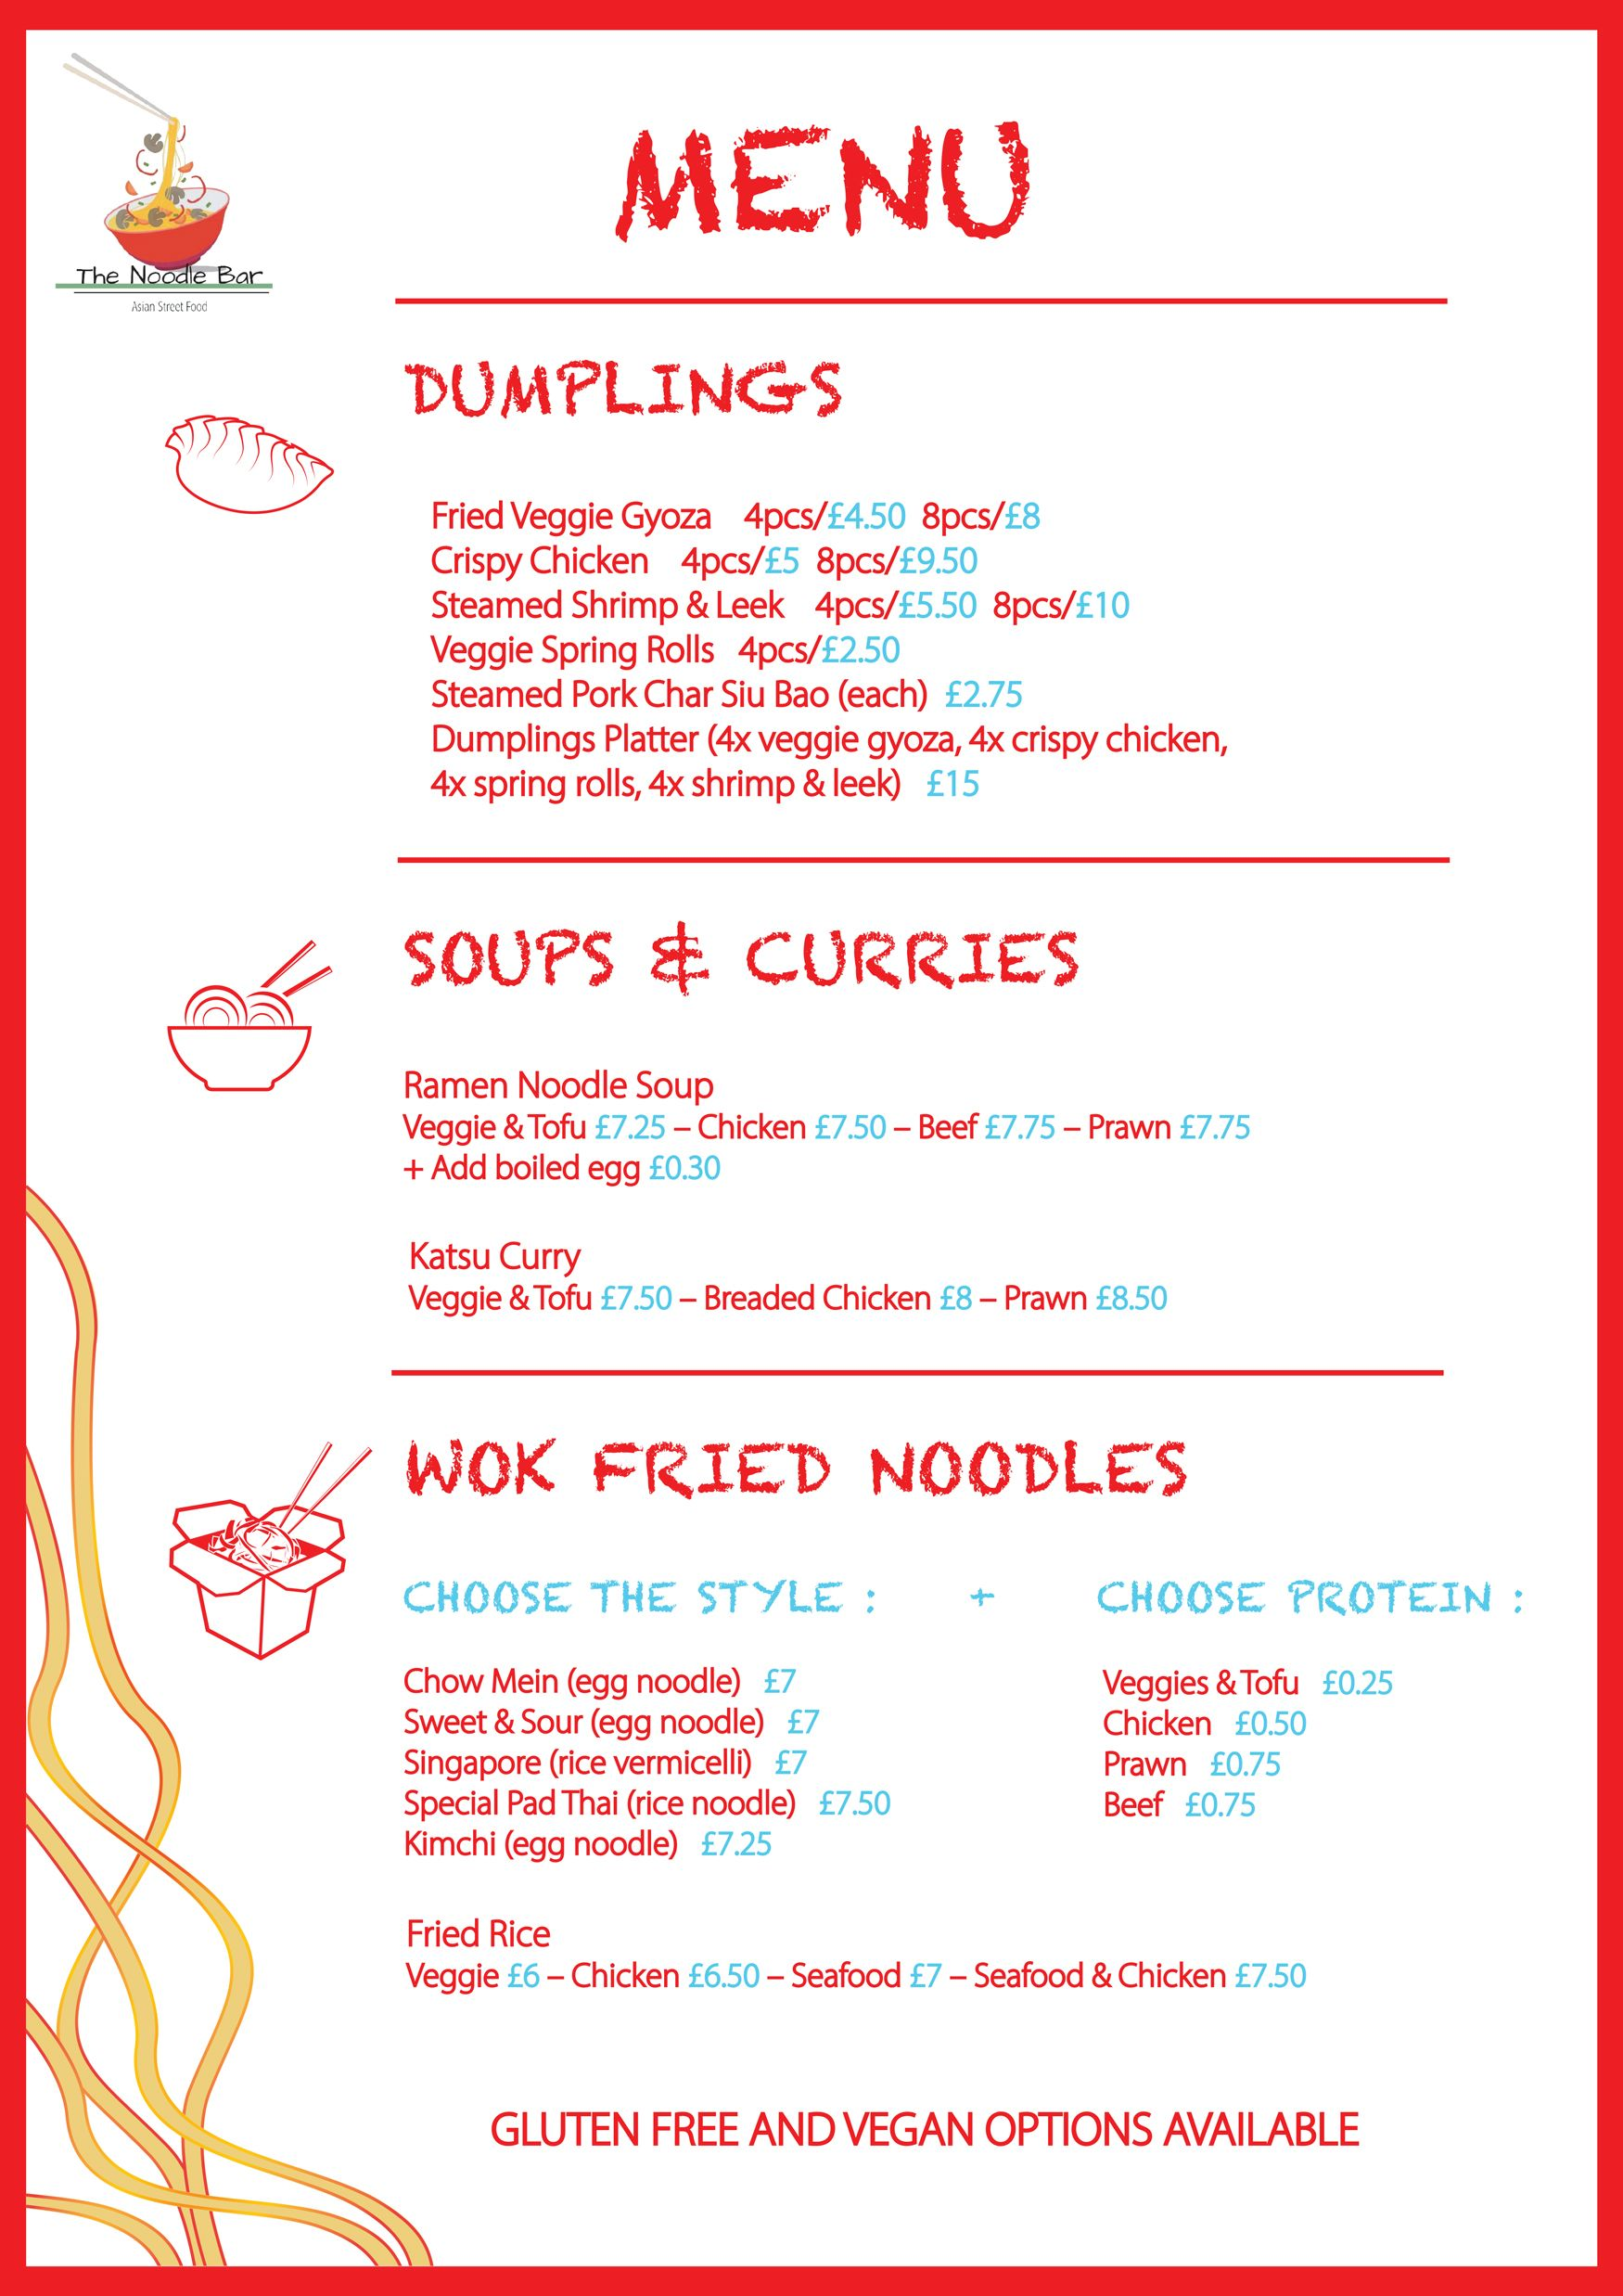 The Noodle Bar menu